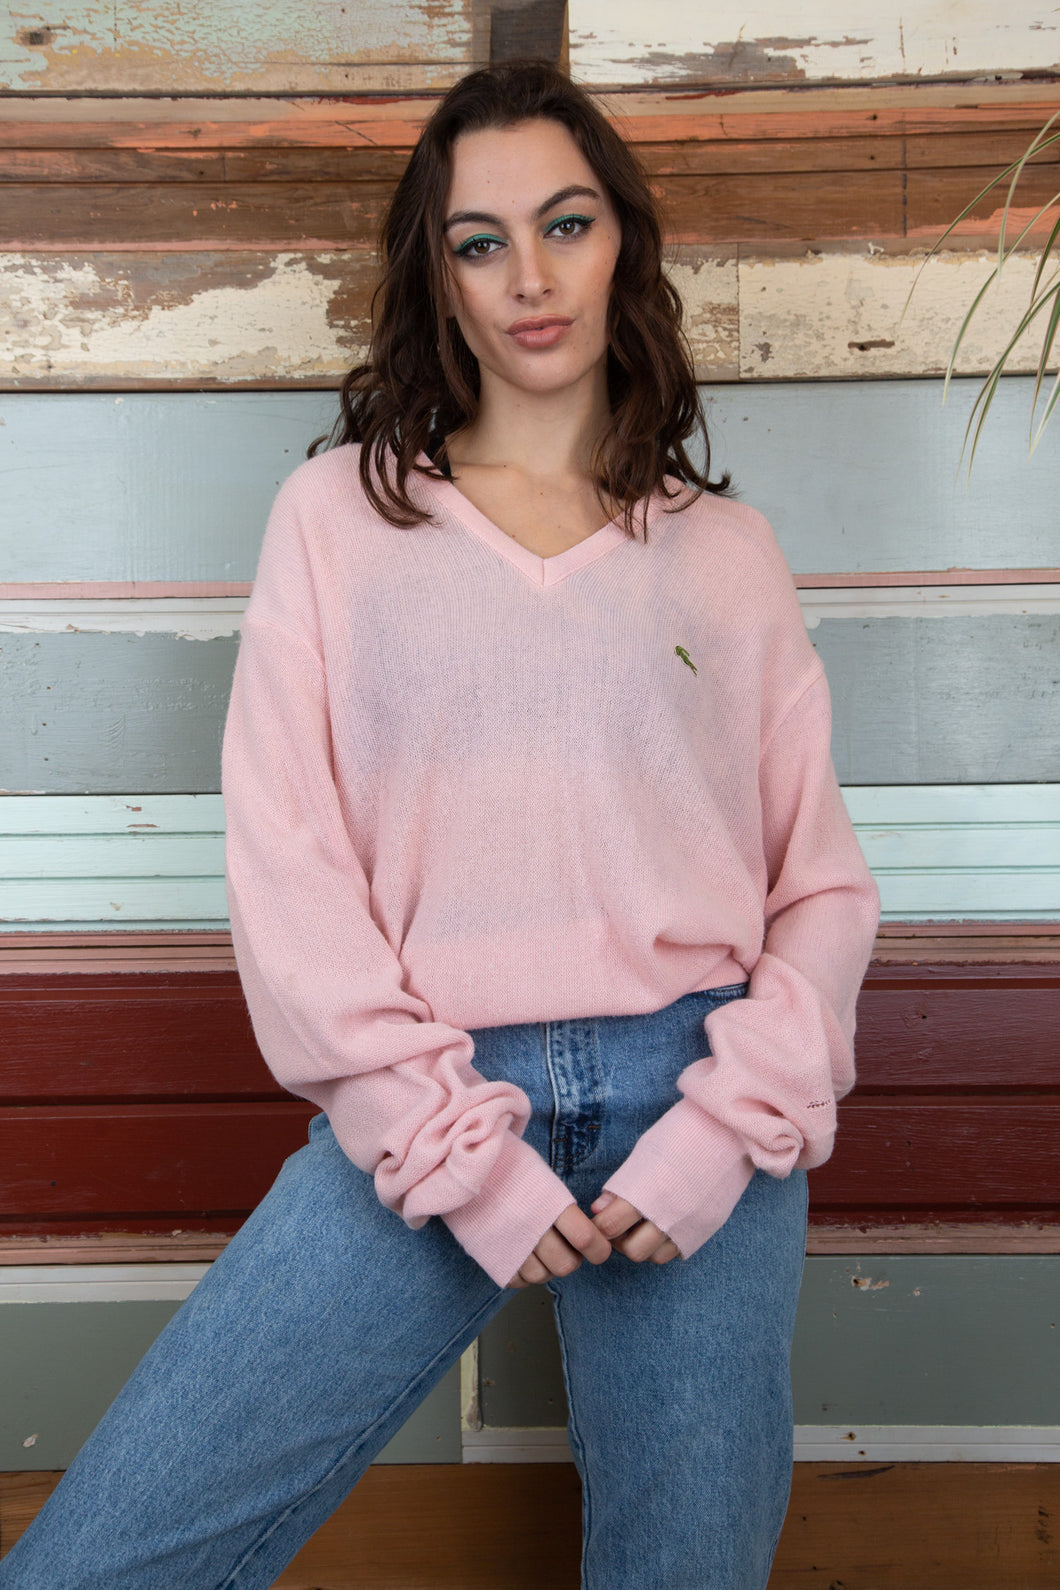 the model is wearing a pink knitted sweater is made by Lacoste, the knit fits oversized on the model.